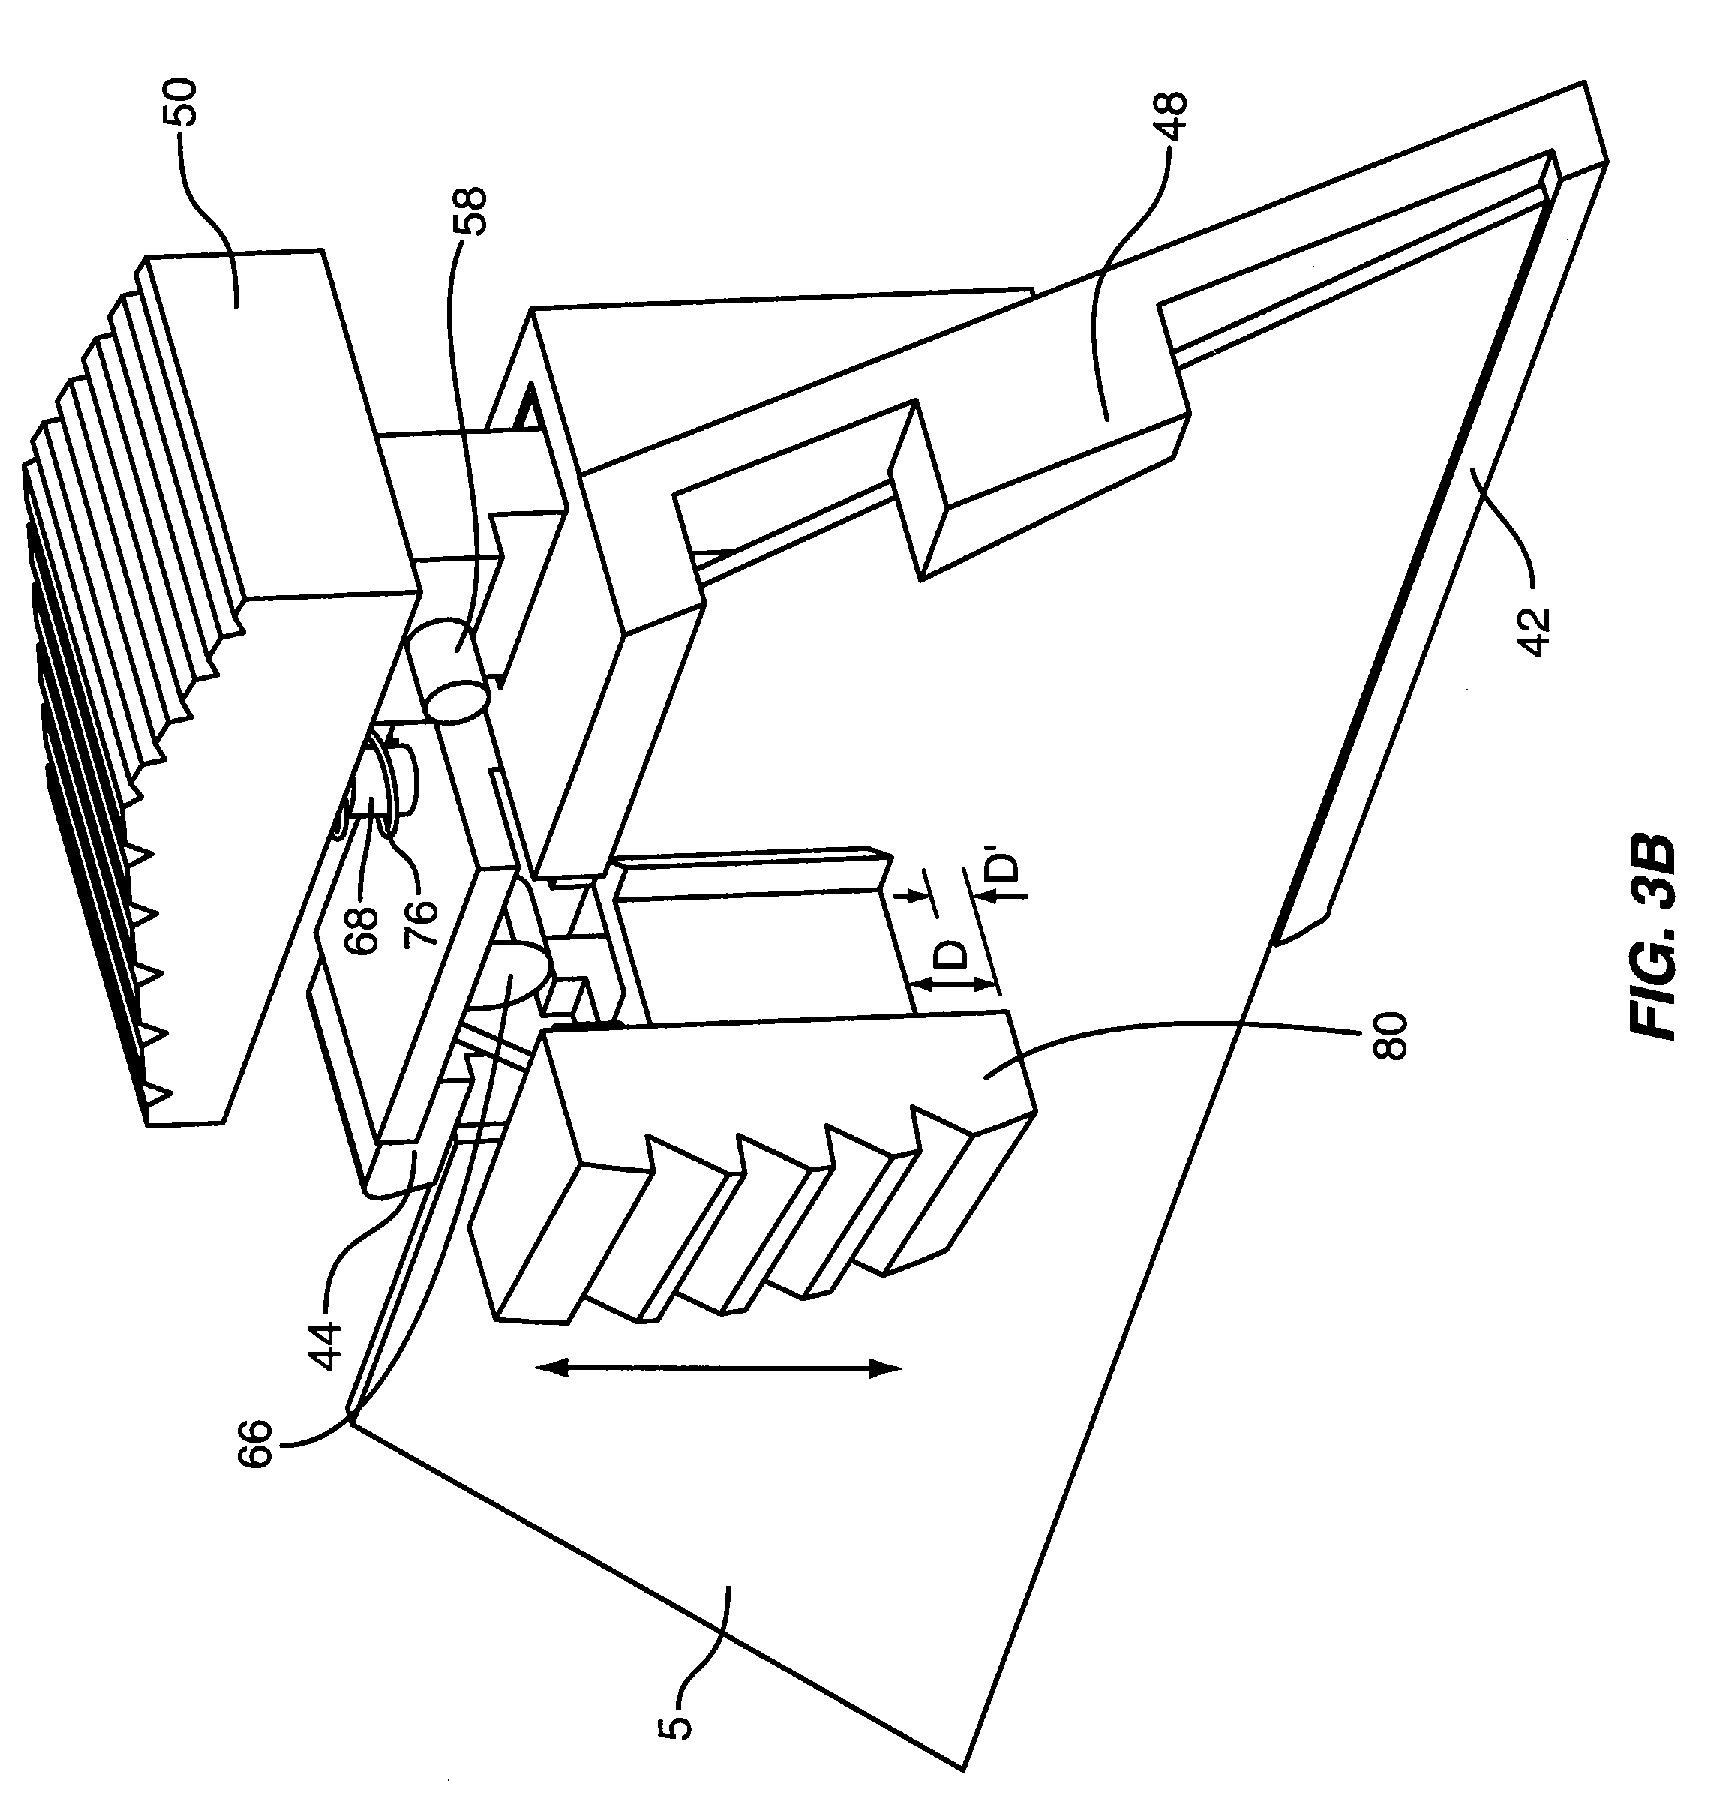 Patent US7305770 - Releasable Blade Locking Mechanism For Utility Knife - Google Patents